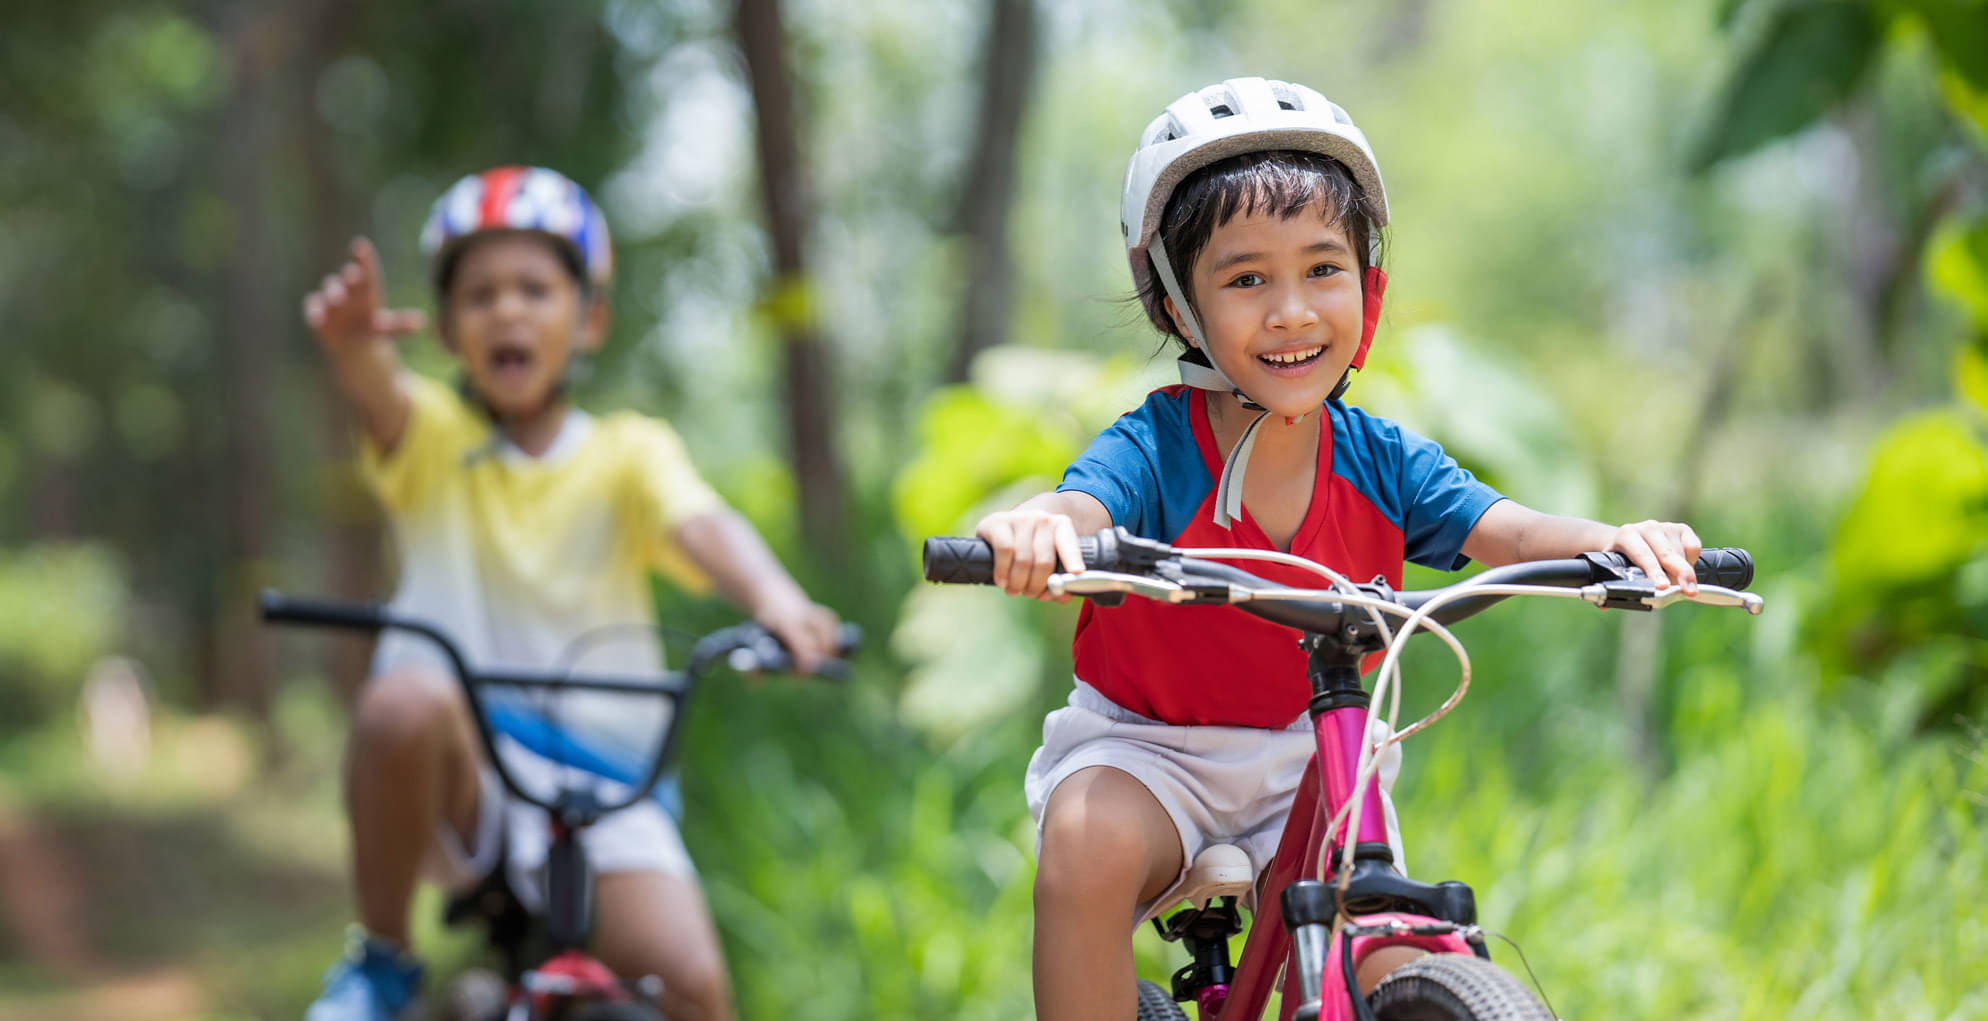 Plan to support your child's aspirations